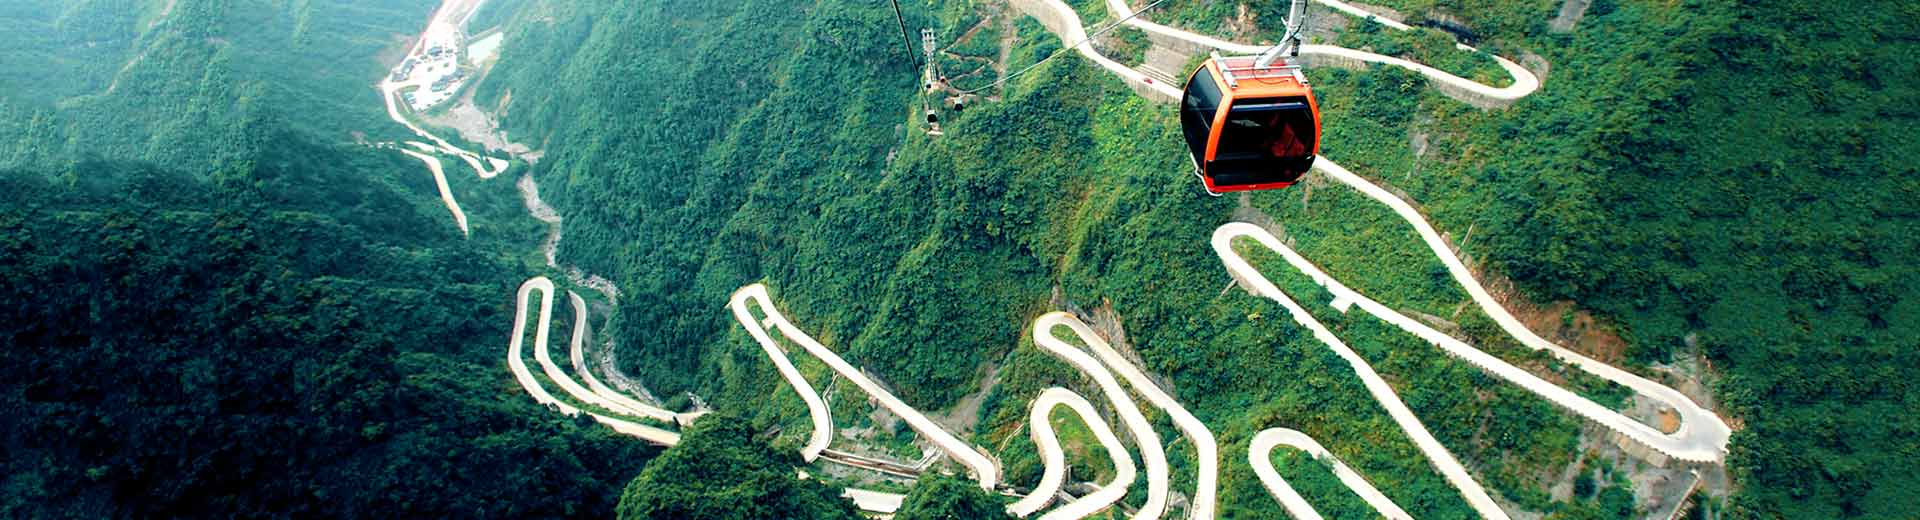 Take Cable Car Ride to Catch the Thrilling 99 Bends at Tianmen Mountain